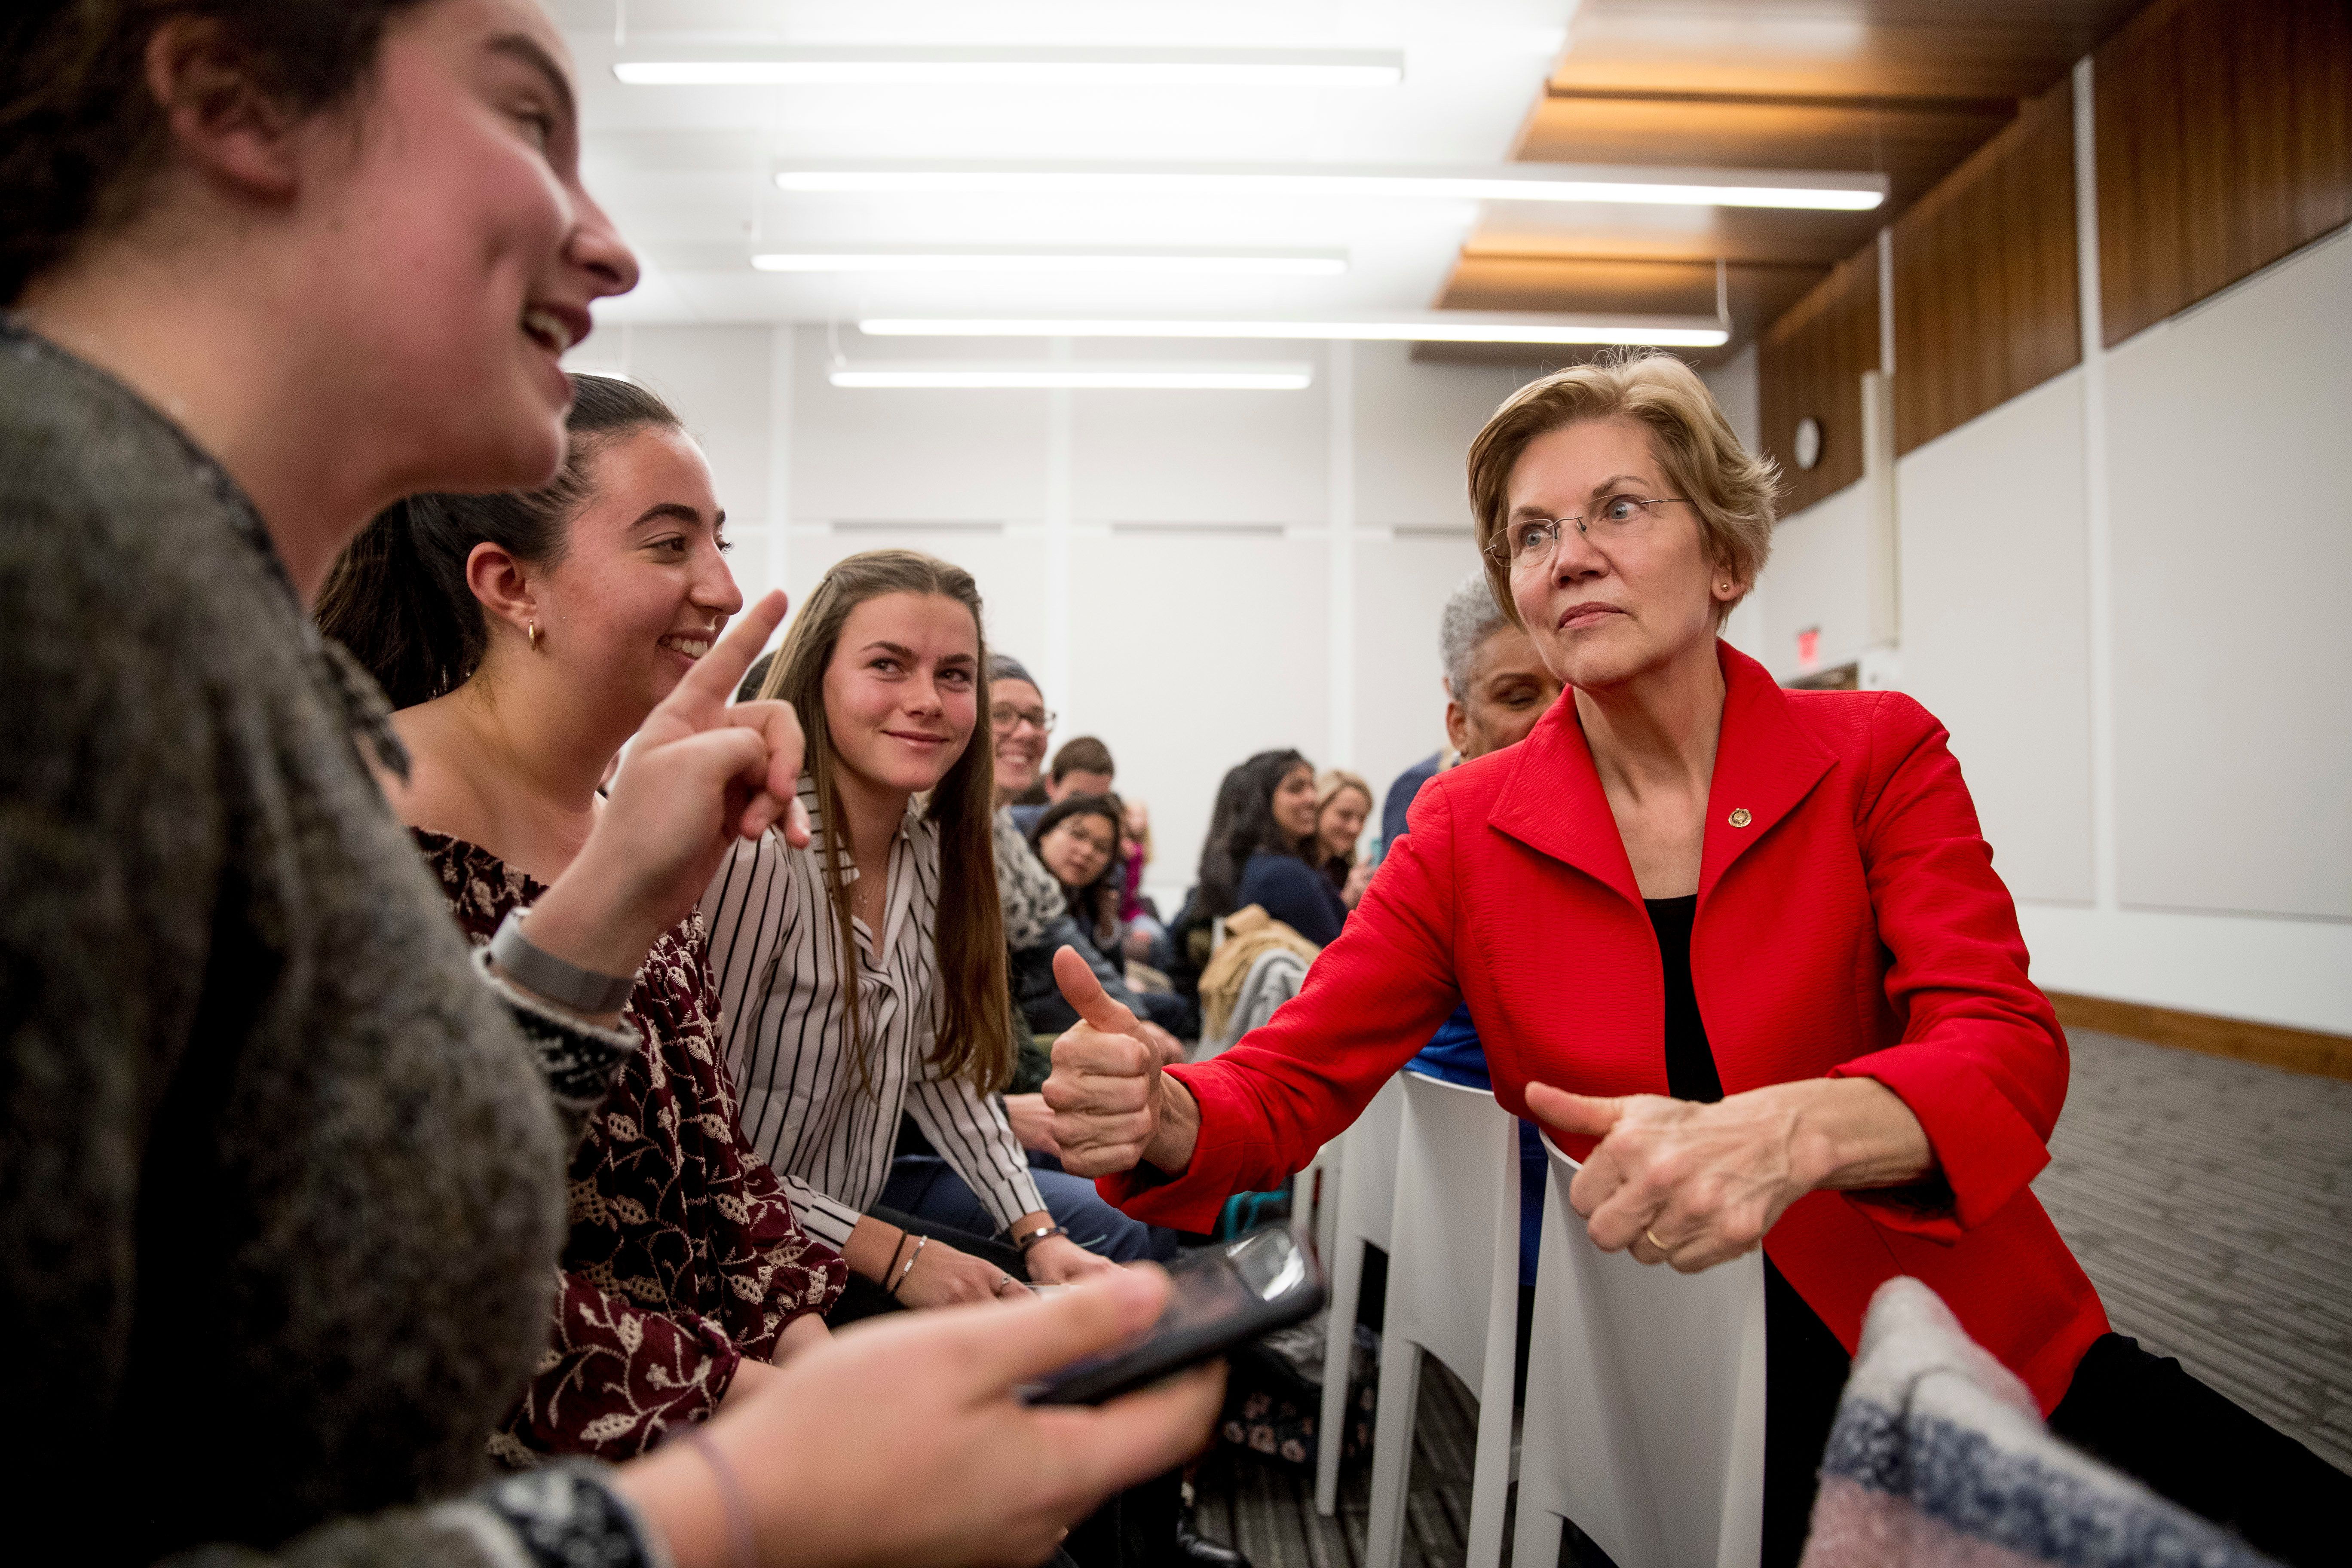 From left, American University freshmen Yardena Gerwin, Marissa Klass, and Karni Campbell greet Sen. Elizabeth Warren, D-Mass., after she speaks at the American University Washington College of Law in Washington, Thursday, Nov. 29, 2018, on her foreign policy vision for the country. (AP Photo/Andrew Harnik)